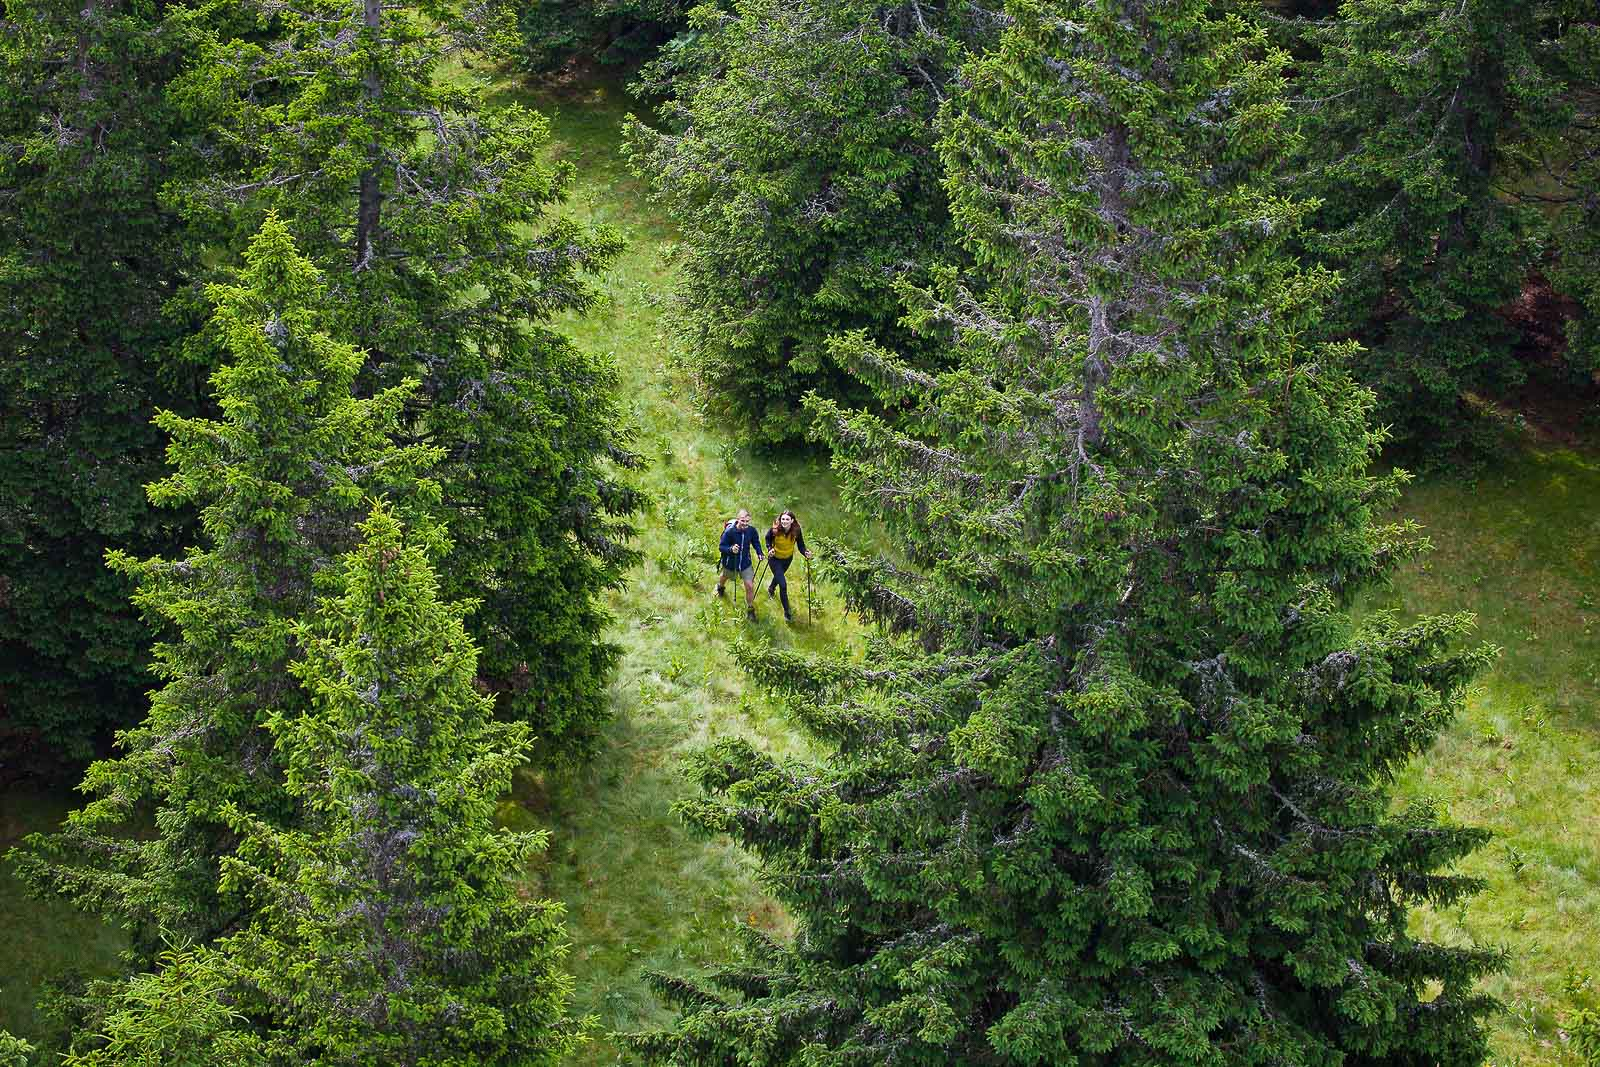 A couple on a hiking trip walking in the clearing in the middle of dense spruce forests of Rogla.